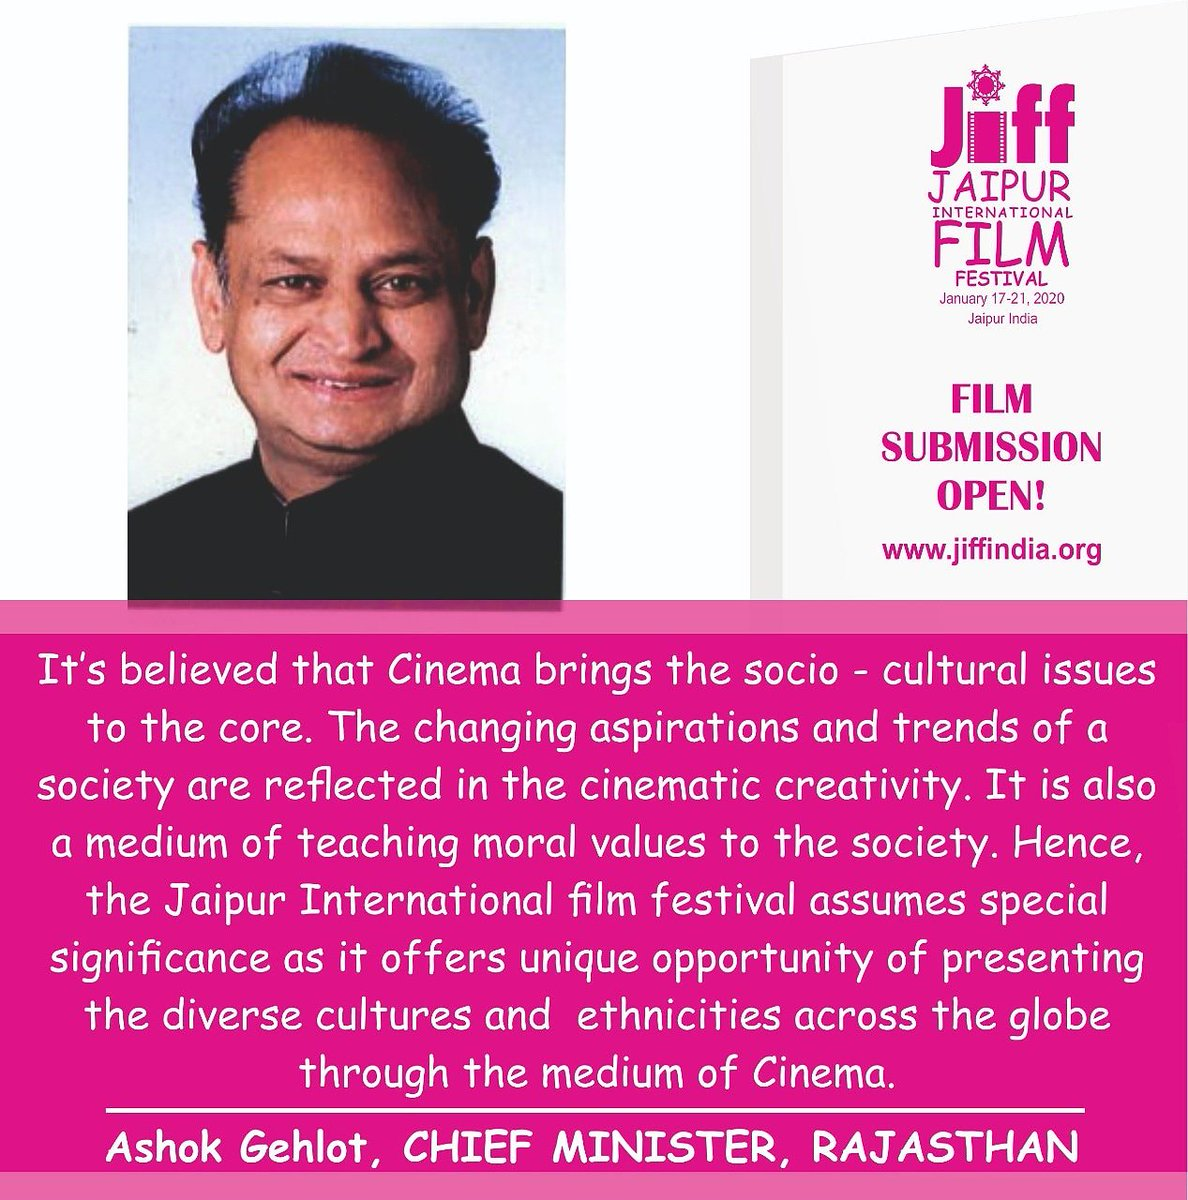 Throwback to JIFF2019 - Dr. B.D Kalla  For more details visit our website-  *http://Jiffindia.org * #website #websitedesign #details #blogs #Admin #blog #Cannes2019 #CannesFilmFestival #jiff #jiff2019 #jaipurinternationalfilmfestival #jaipurfilmfestival #Throwback